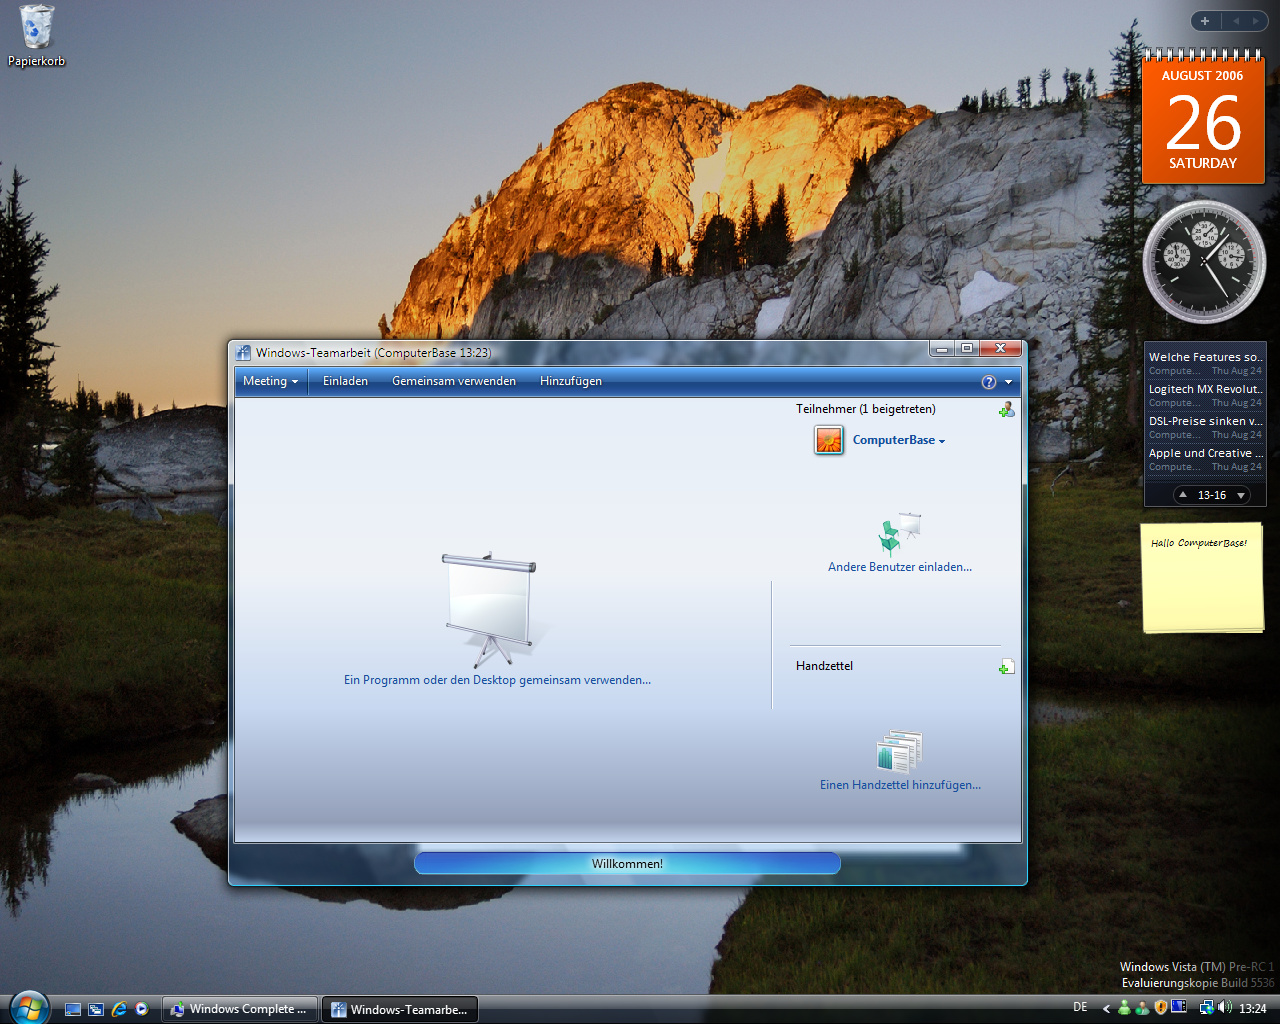 Windows Vista Build 5536 - Teamarbeit 2